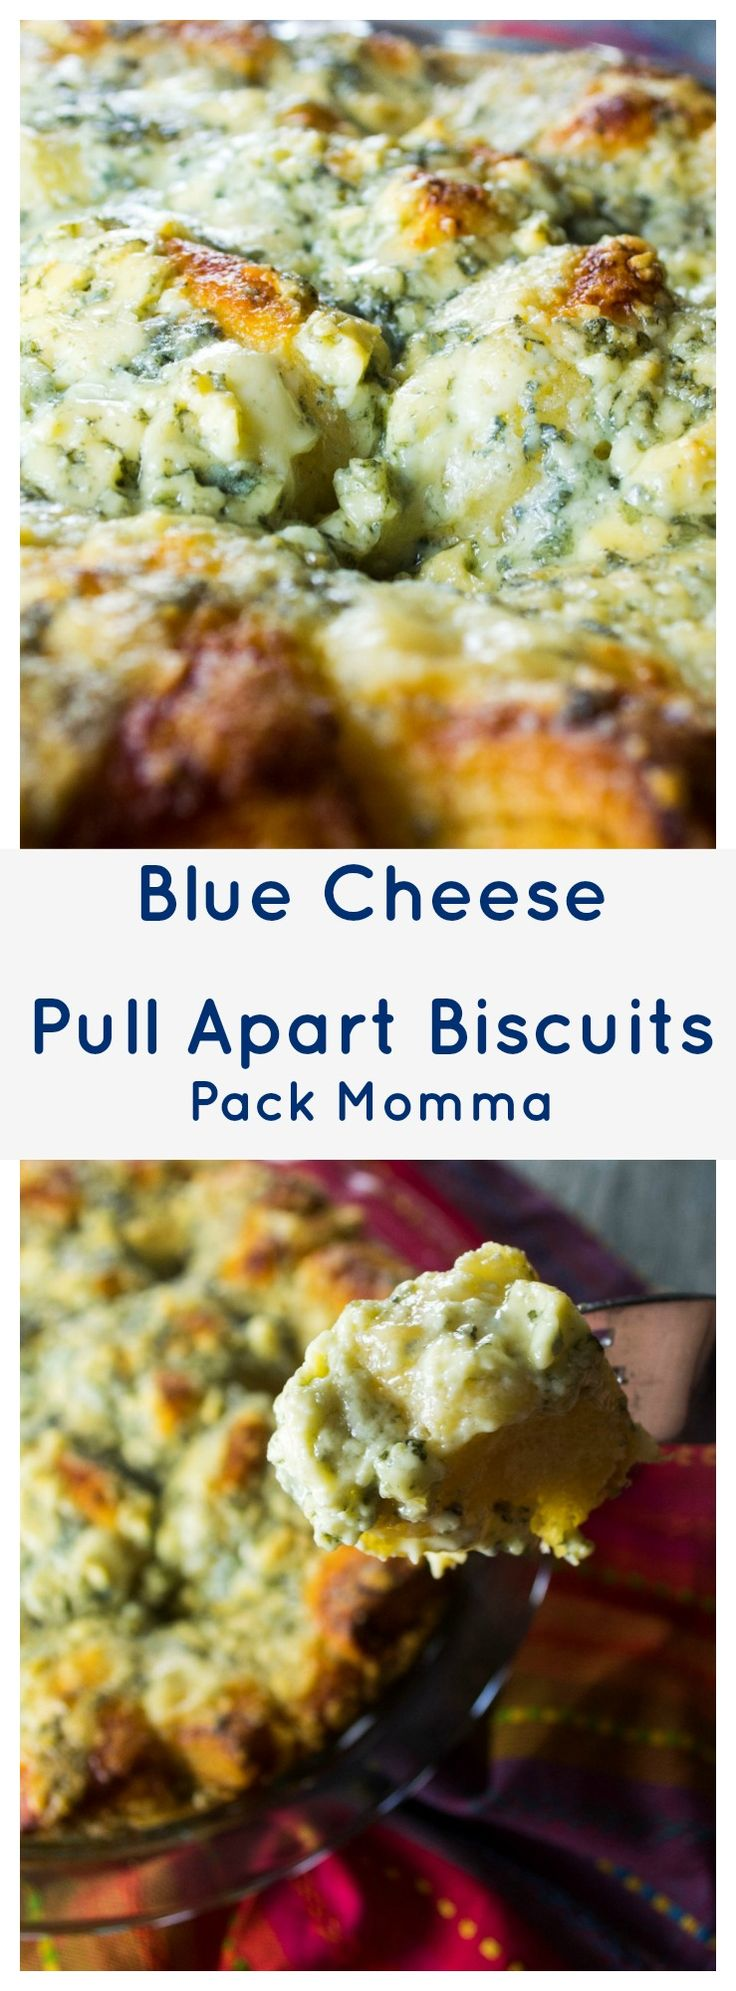 Blue Cheese Pull Apart Biscuits|Blue Cheese Pull Apart Biscuits is a hot, cheesy, bubbly appetizer that only has THREE INGREDIENTS! It's the perfect snack for your next social gathering | packmomma.com